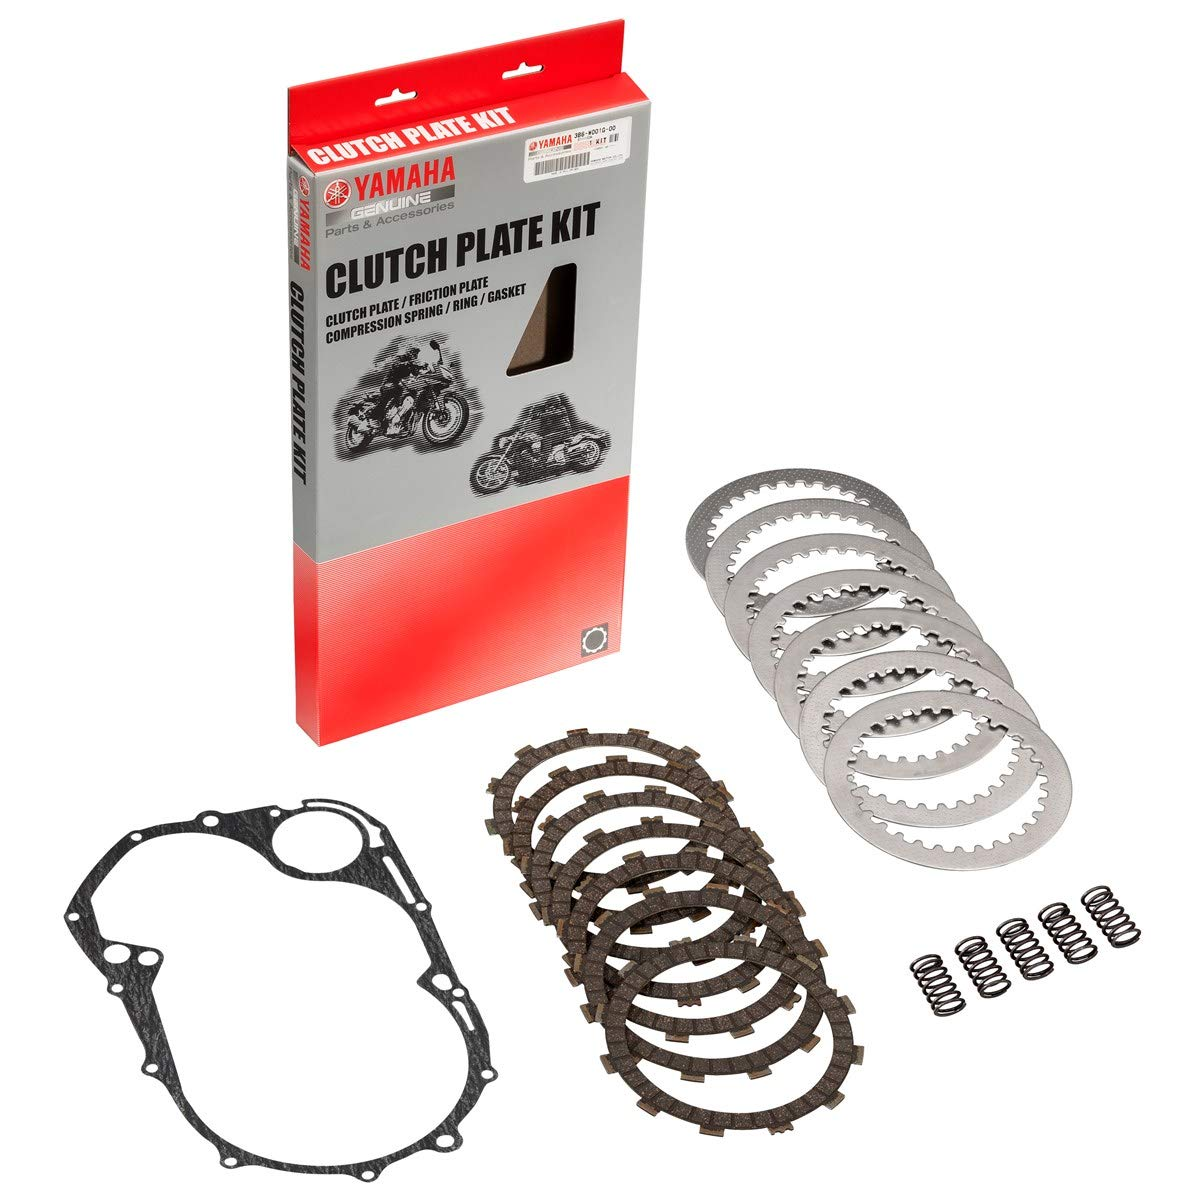 Yamaha 3B6-W001G-00-00 Clutch Kit for Yamaha V-Star Classic by YAMAHA